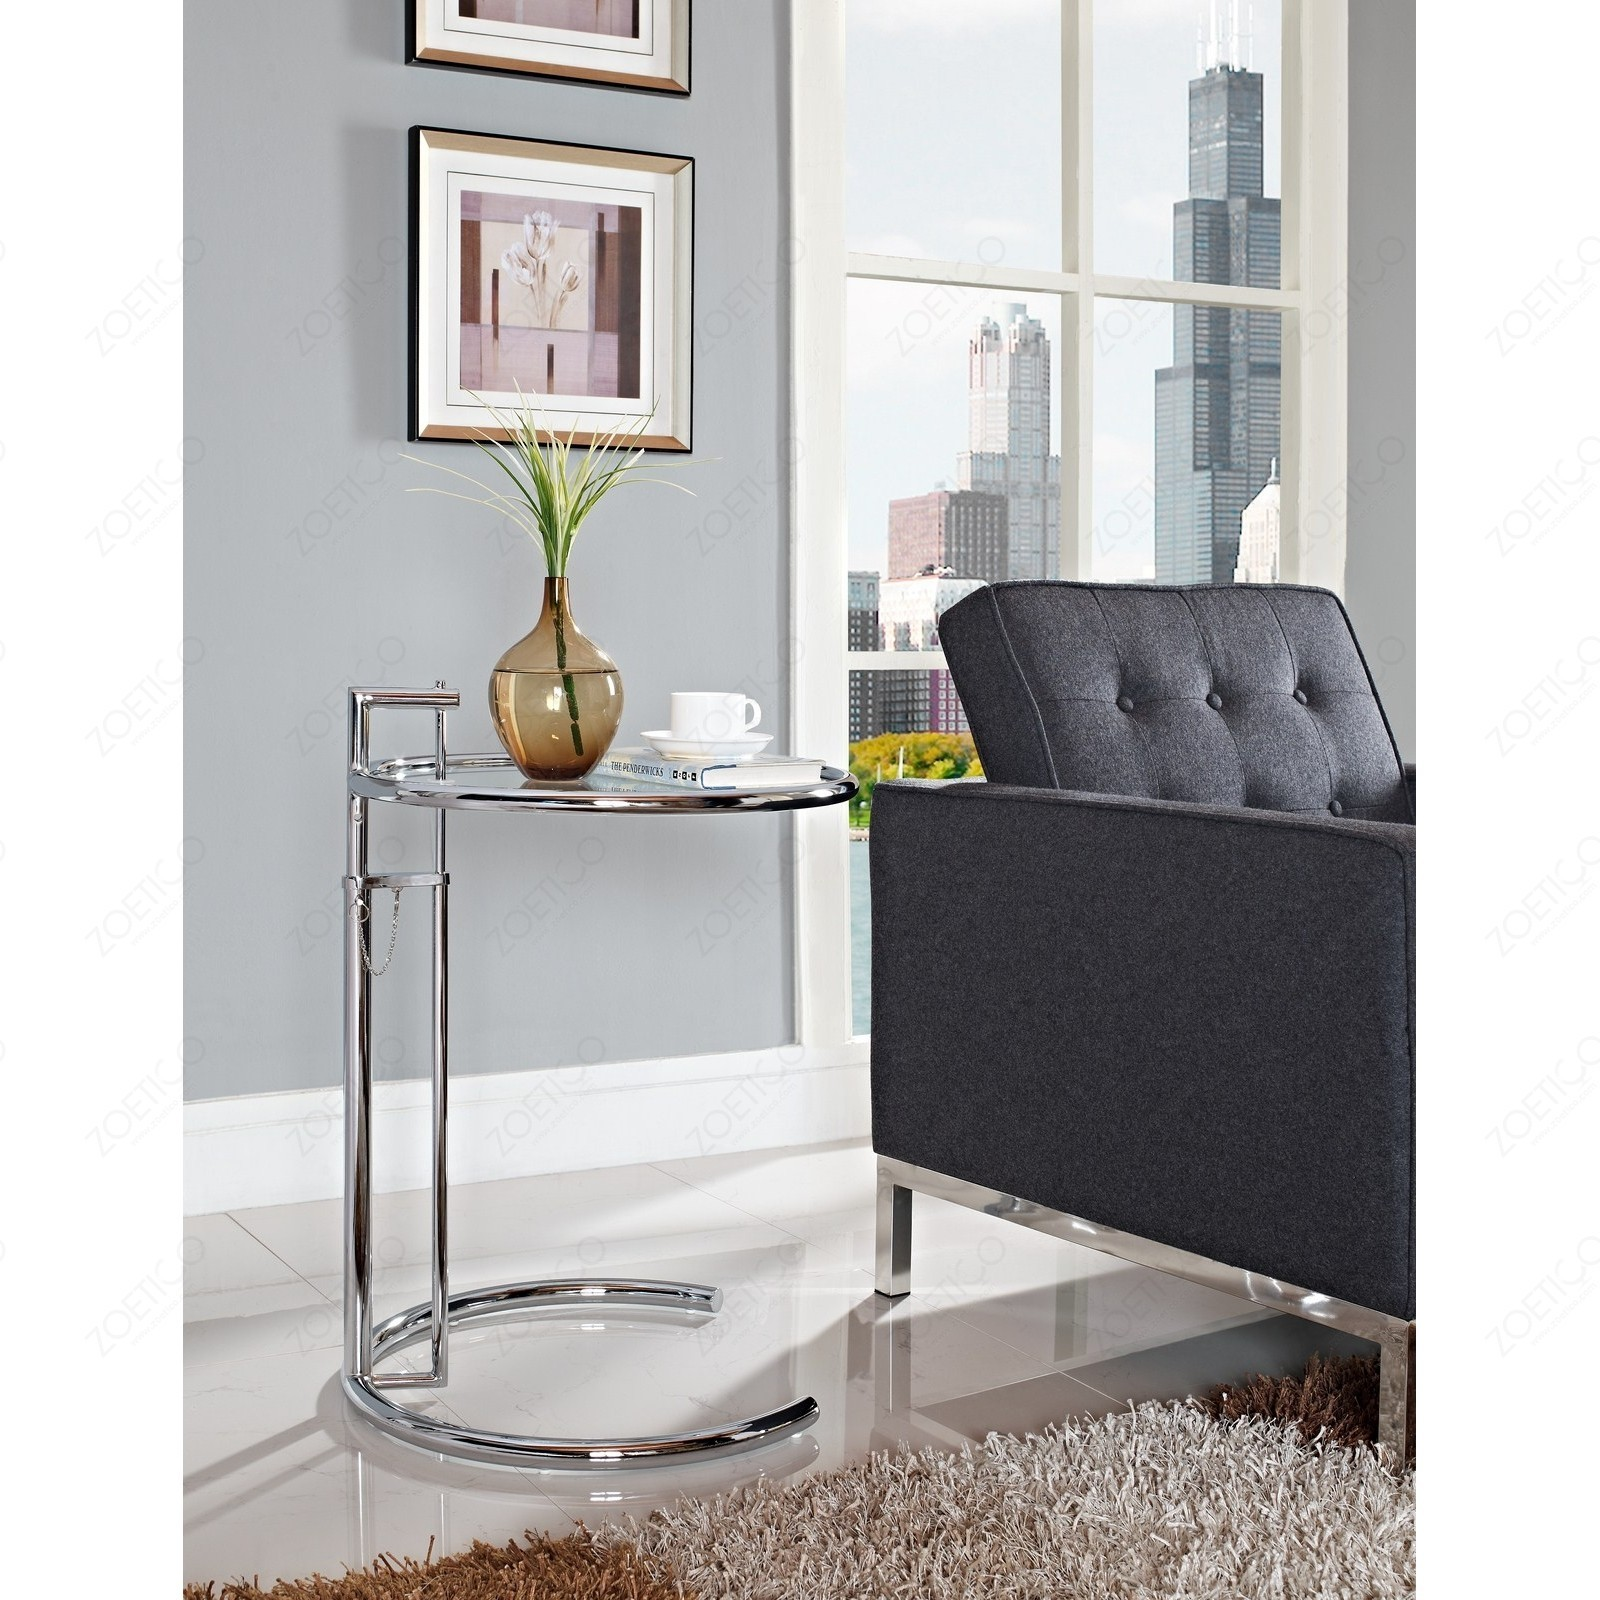 eileen gray side table coffee end tables star modern furniture. Black Bedroom Furniture Sets. Home Design Ideas